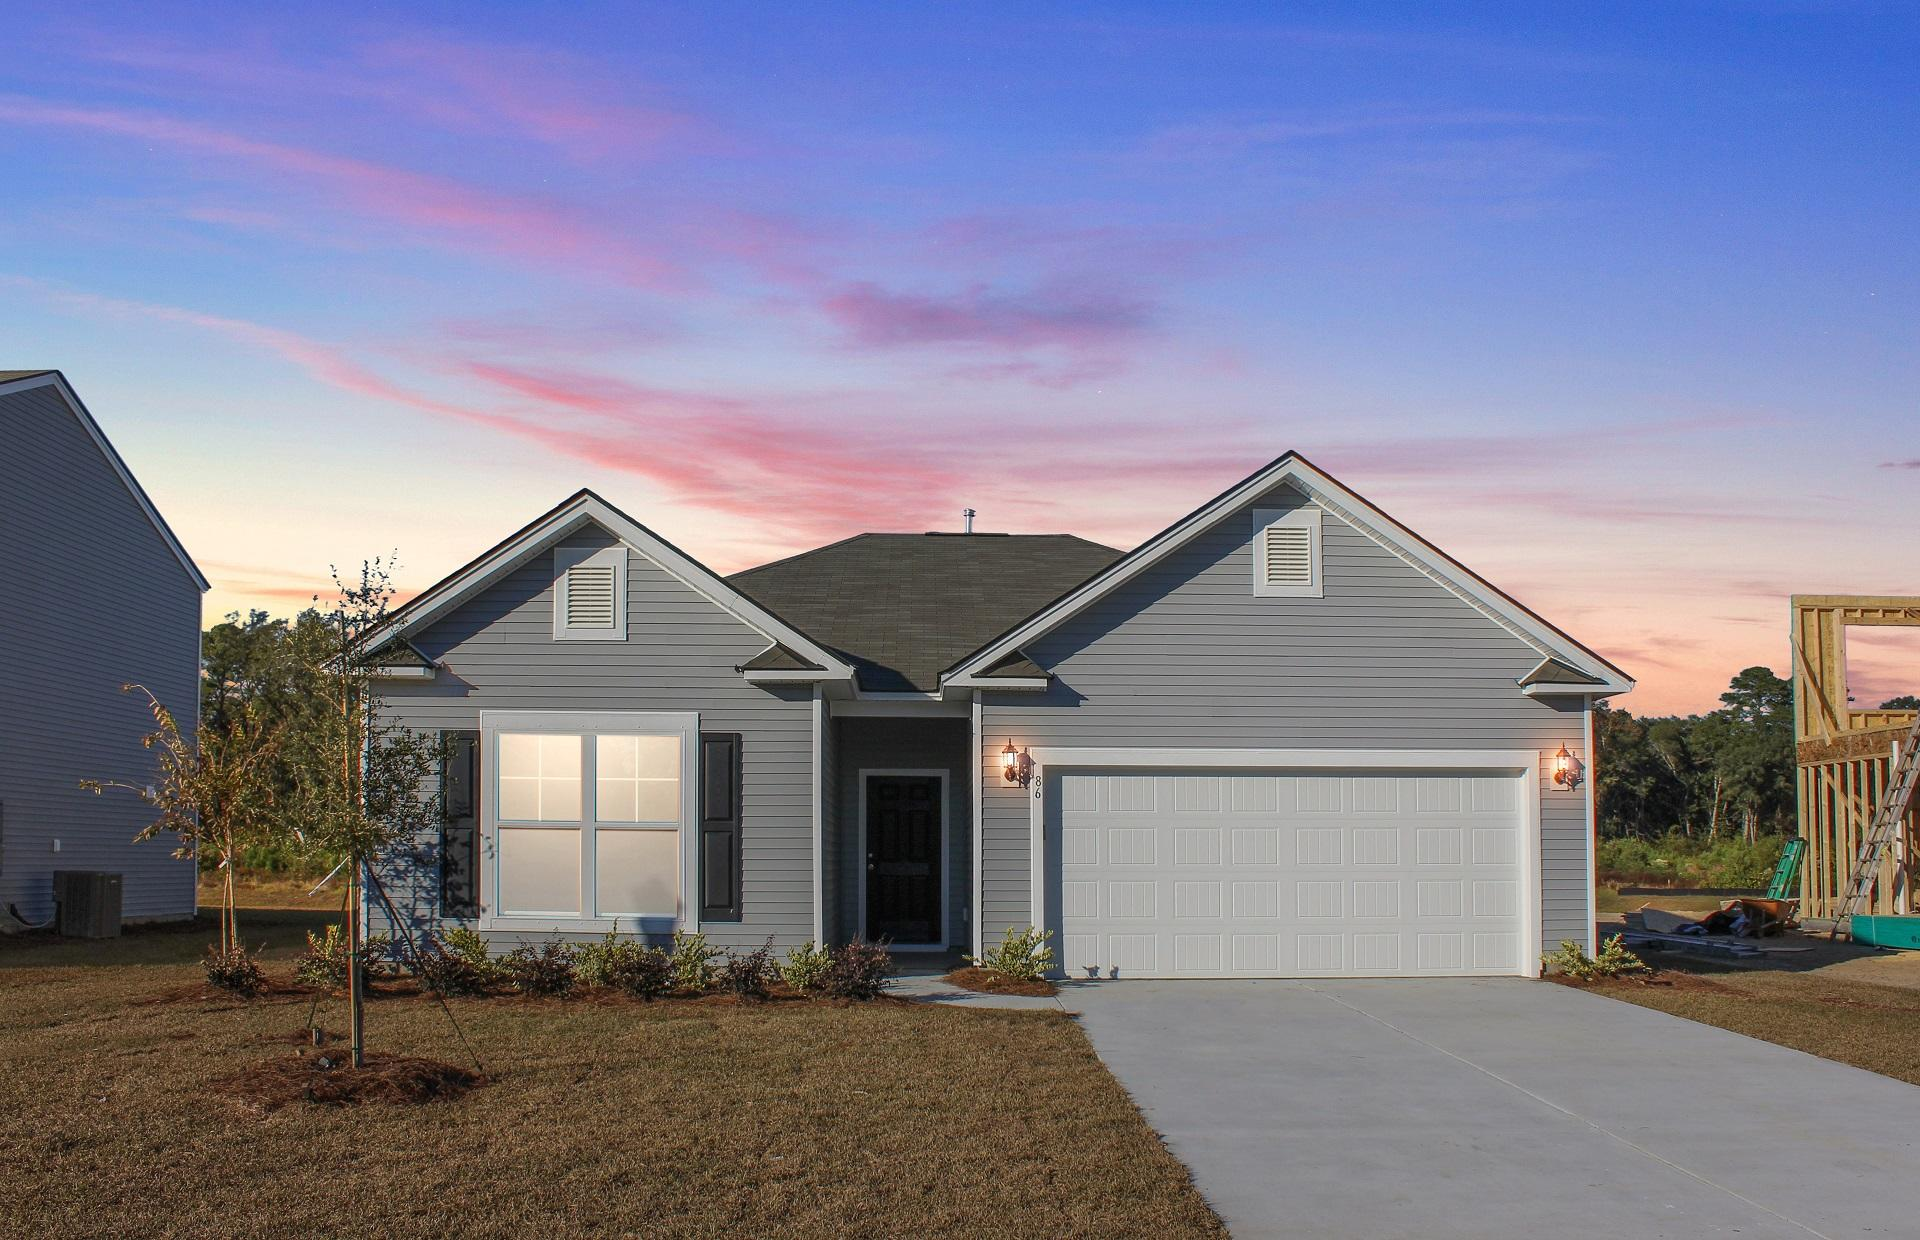 Sanctuary Cove at Cane Bay by Centex Homes image 0